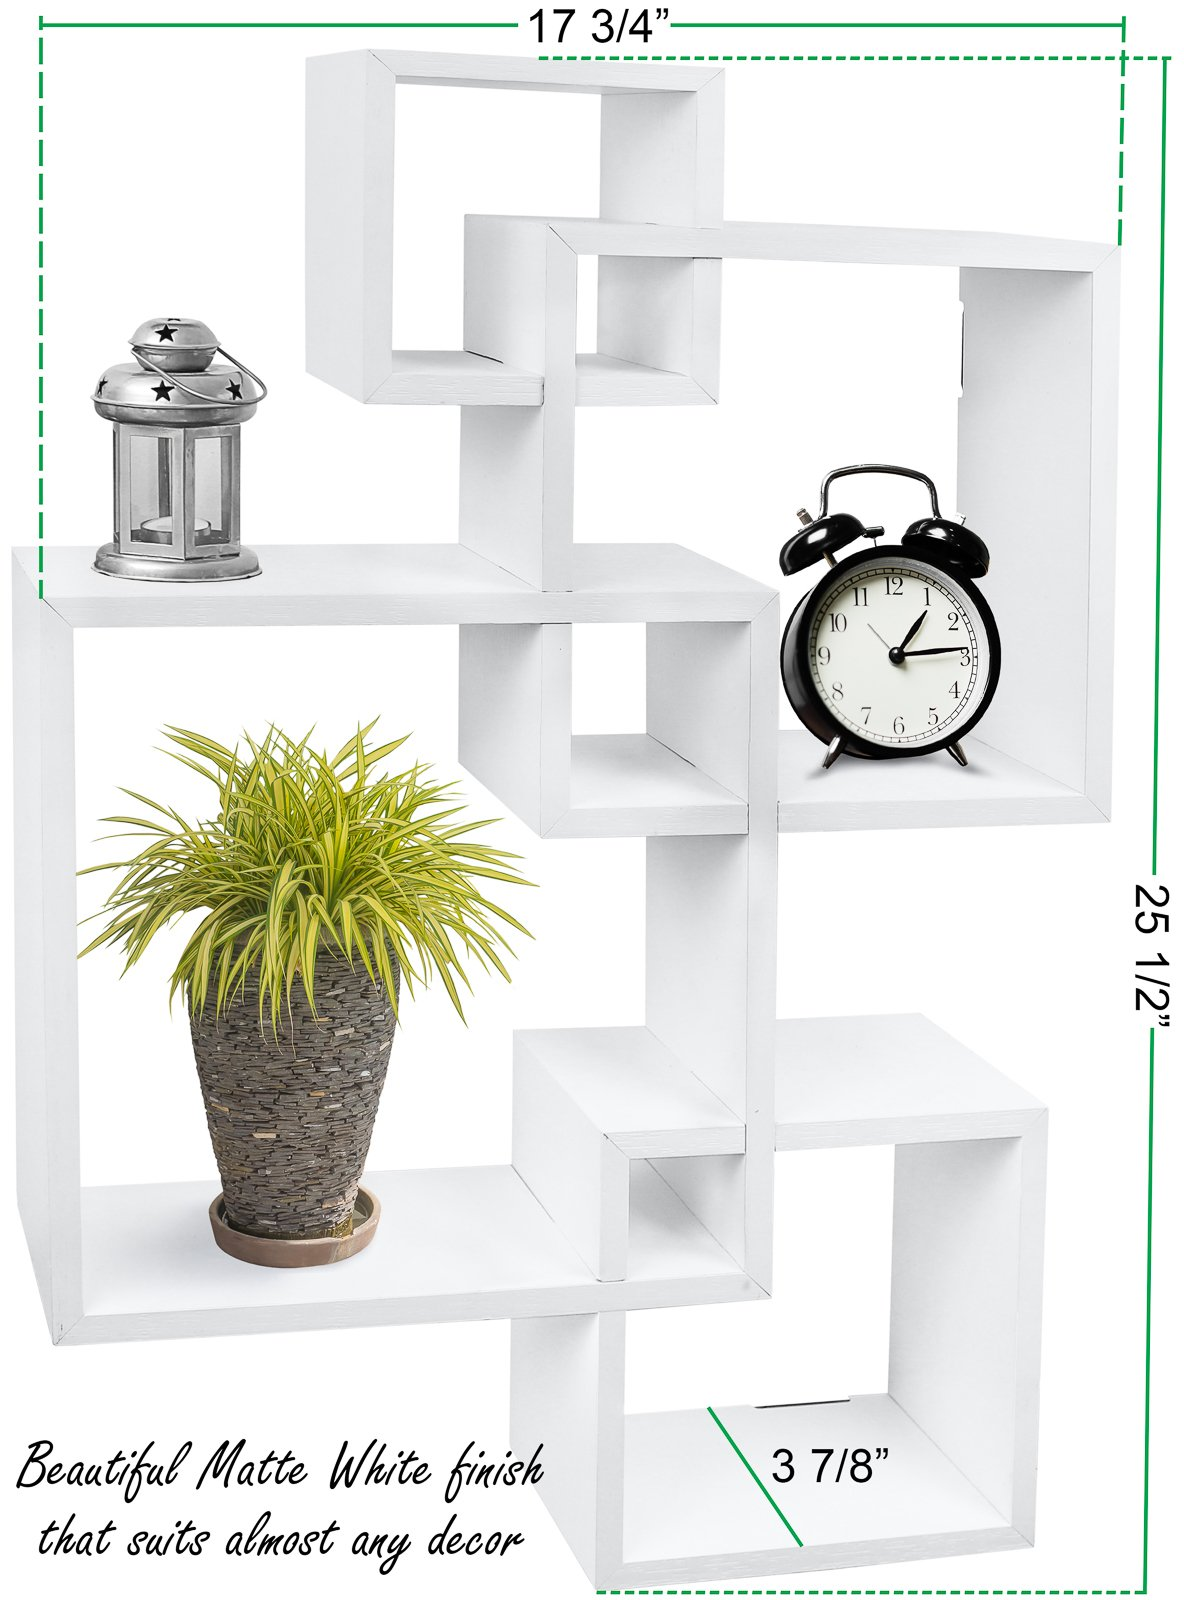 Greenco Decorative 4 Cube Intersecting Wall Mounted Floating Shelves- White Finish - Decorative intersecting floating shelves Made of durable MDF laminate. Beautiful White finish that suits almost any decor. Easy to mount with all necessary hardware Included. Hardware is not visable when mounted - wall-shelves, living-room-furniture, living-room - 71NyXpGu1yL -